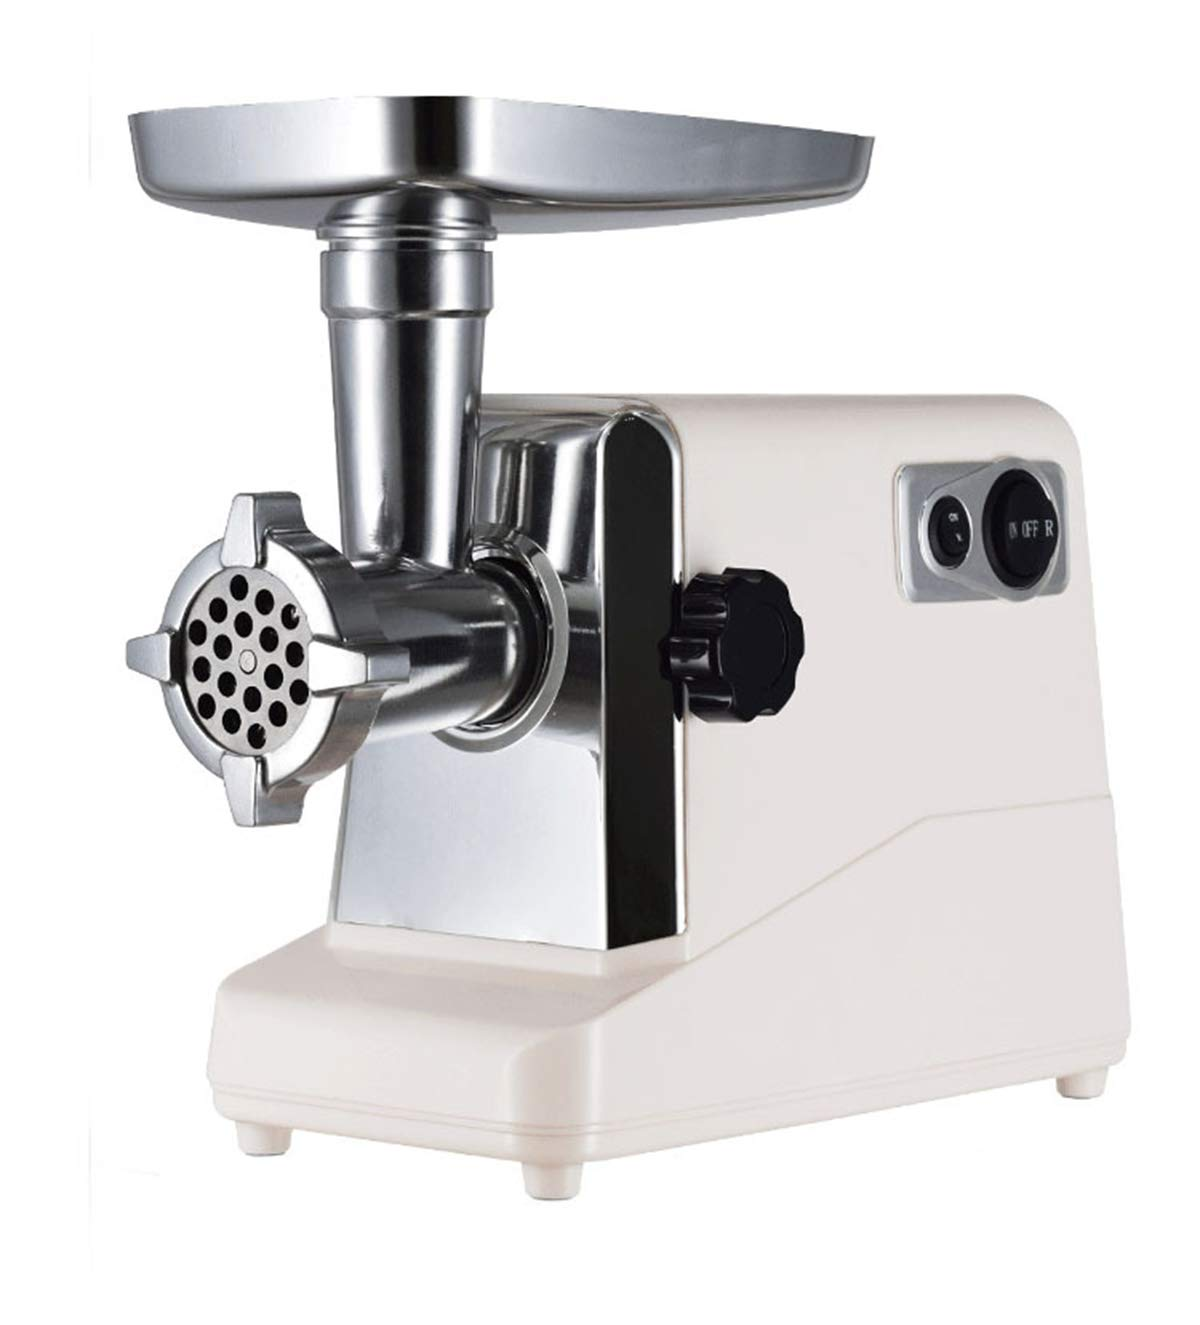 SHUHAO Electric Meat Grinder, Sausage Machine, Home Kitchen Food Processor Meat Grinder Speed 2Kg / Min, for Making Baby Food Seasonings and Fillings